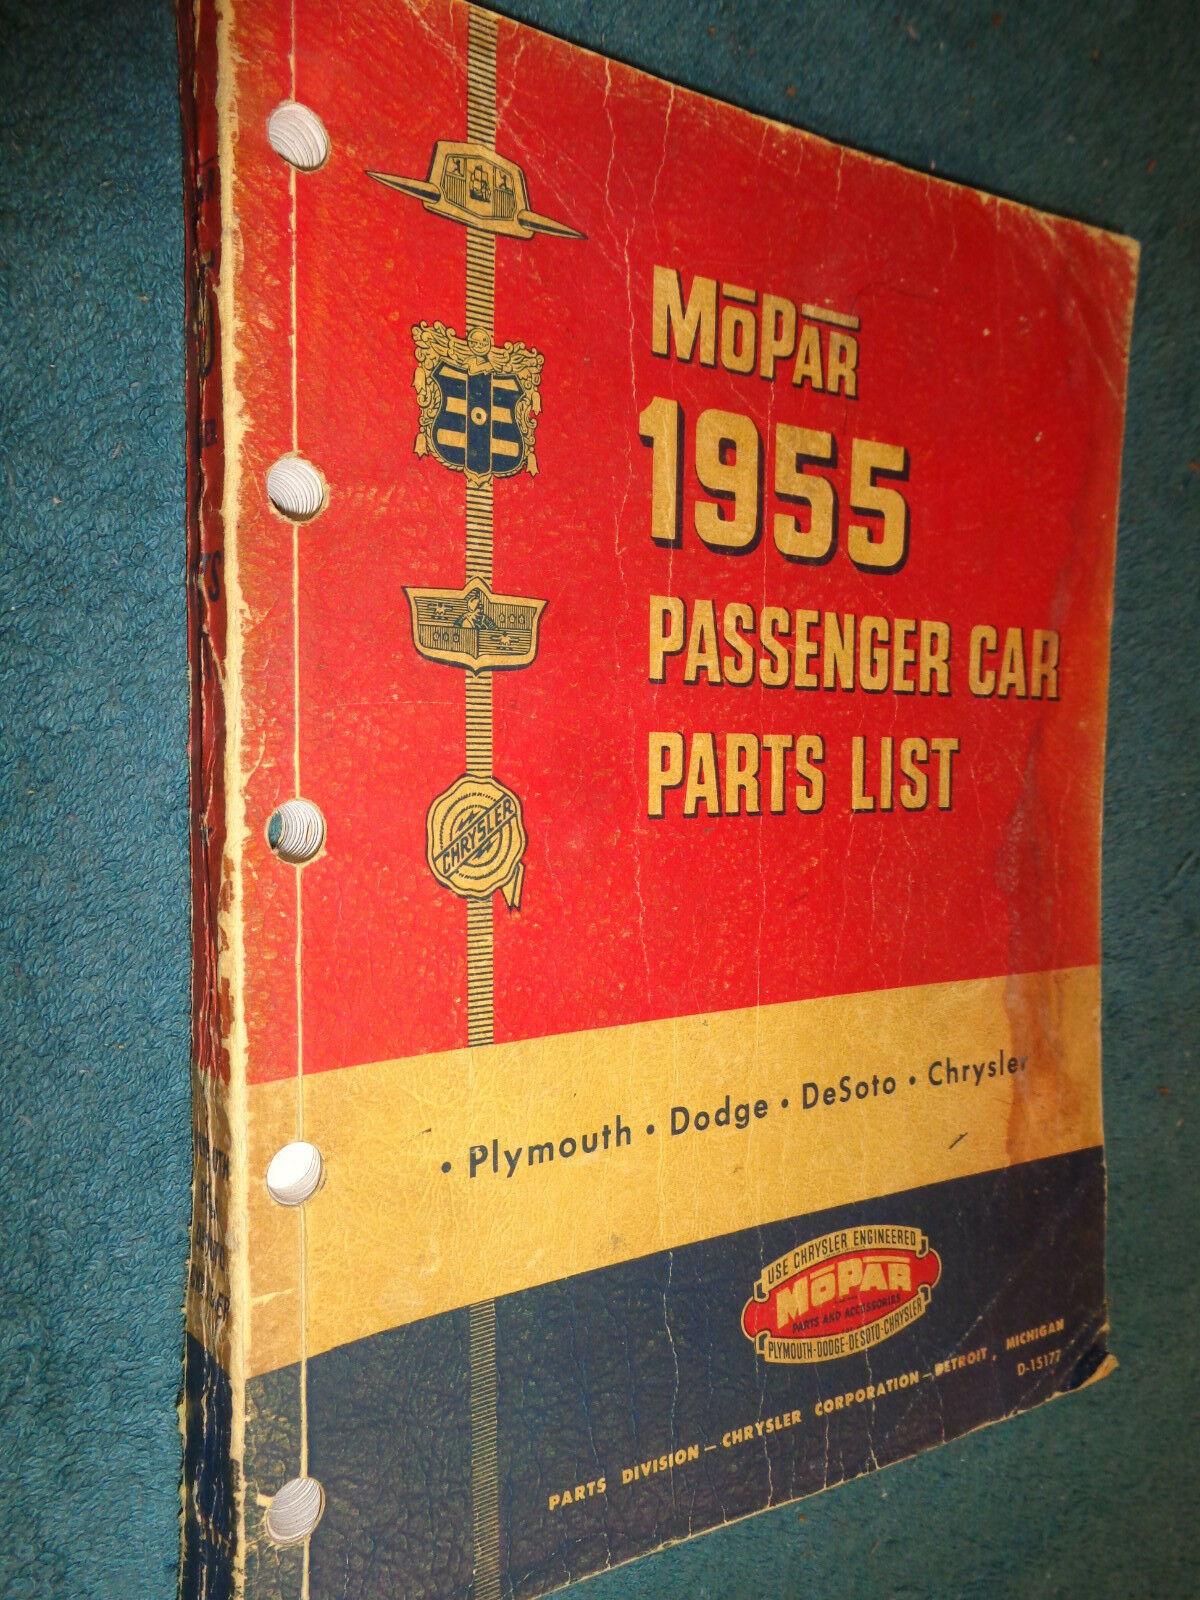 Remarkable 1955 Dodge Plymouth Desoto Parts Catalog Parts Manual Original Book Wiring Cloud Hisonuggs Outletorg